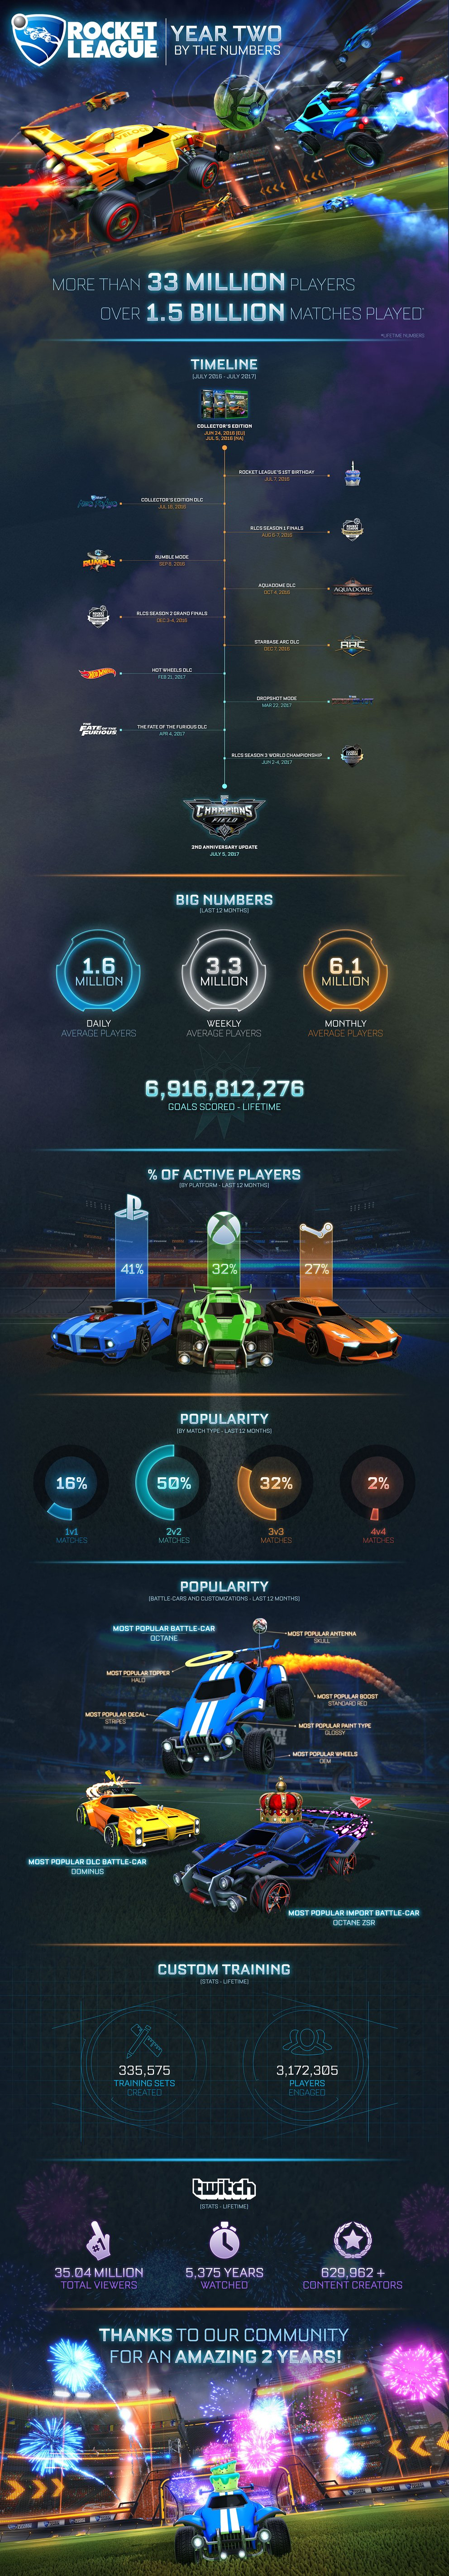 Quelle: Rocketleague.com